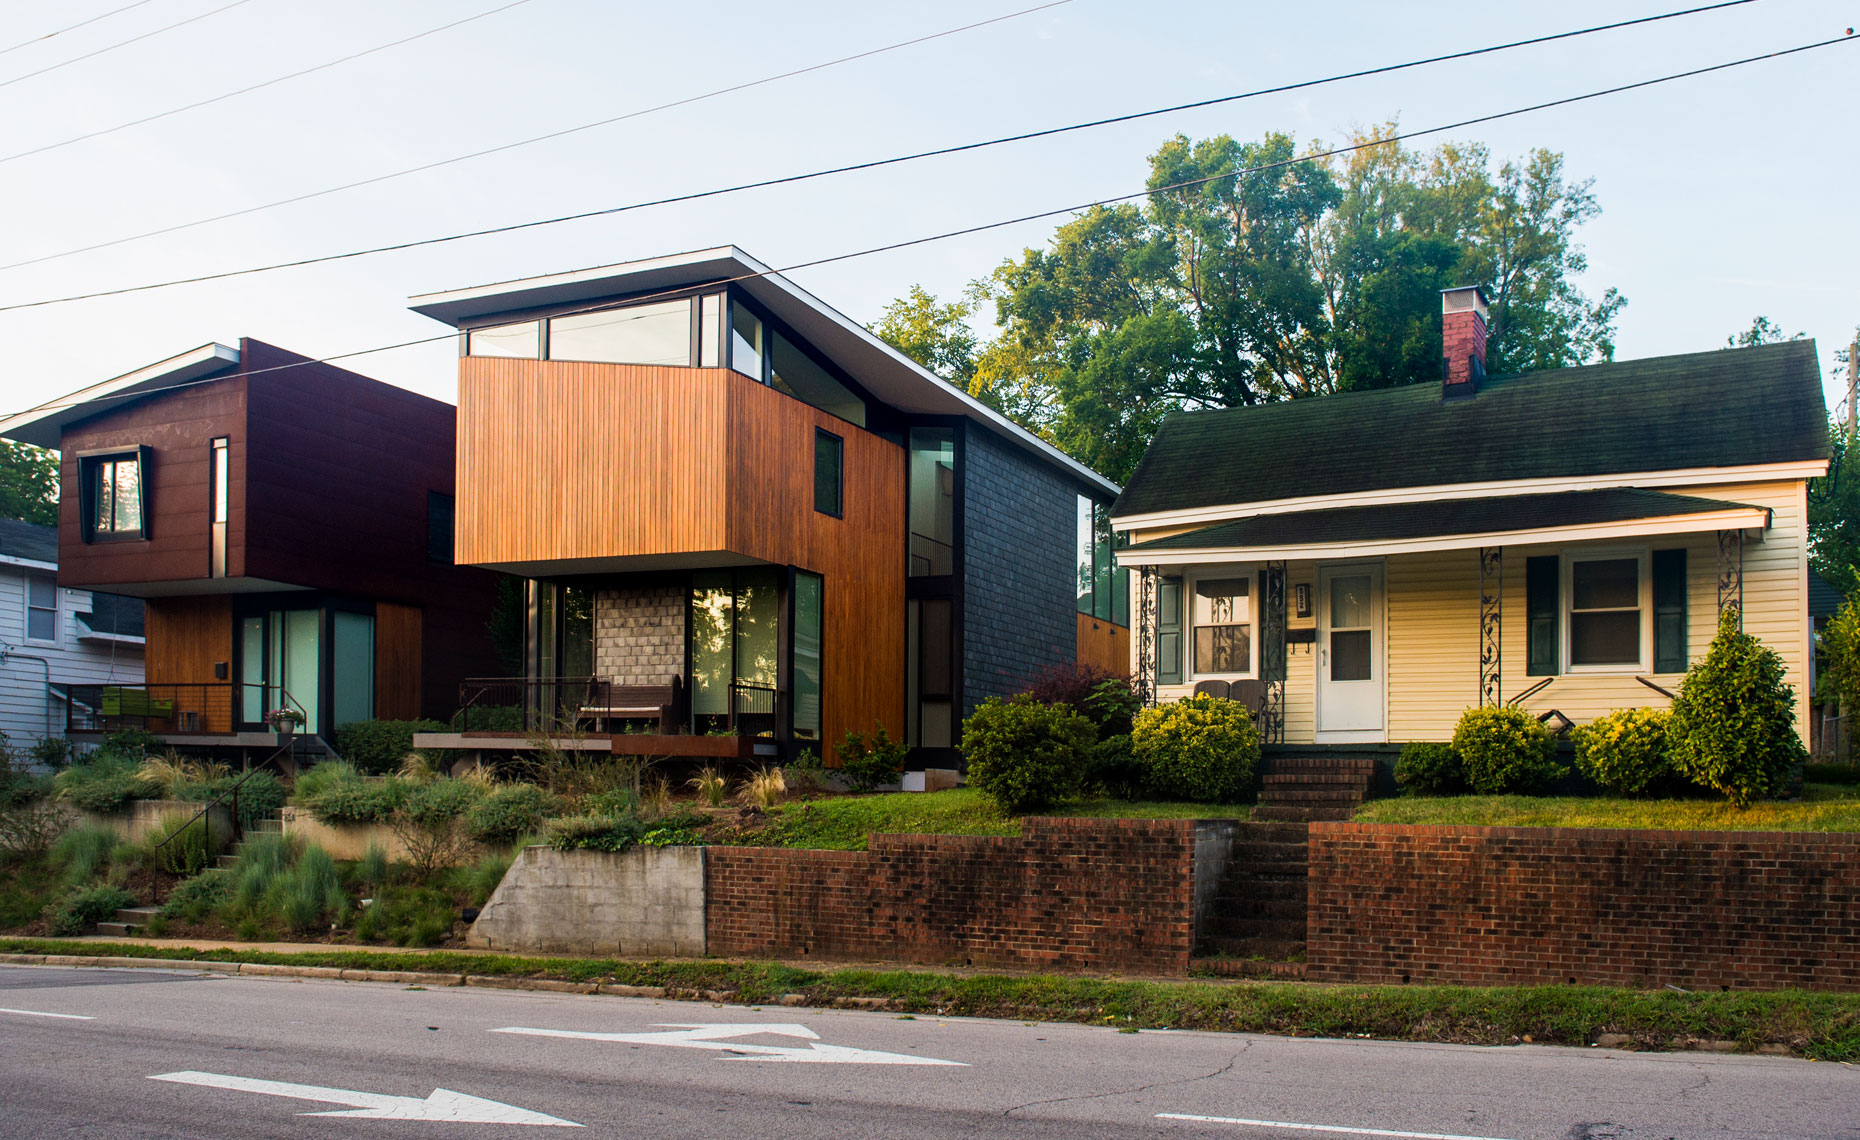 Raleigh architecture photography